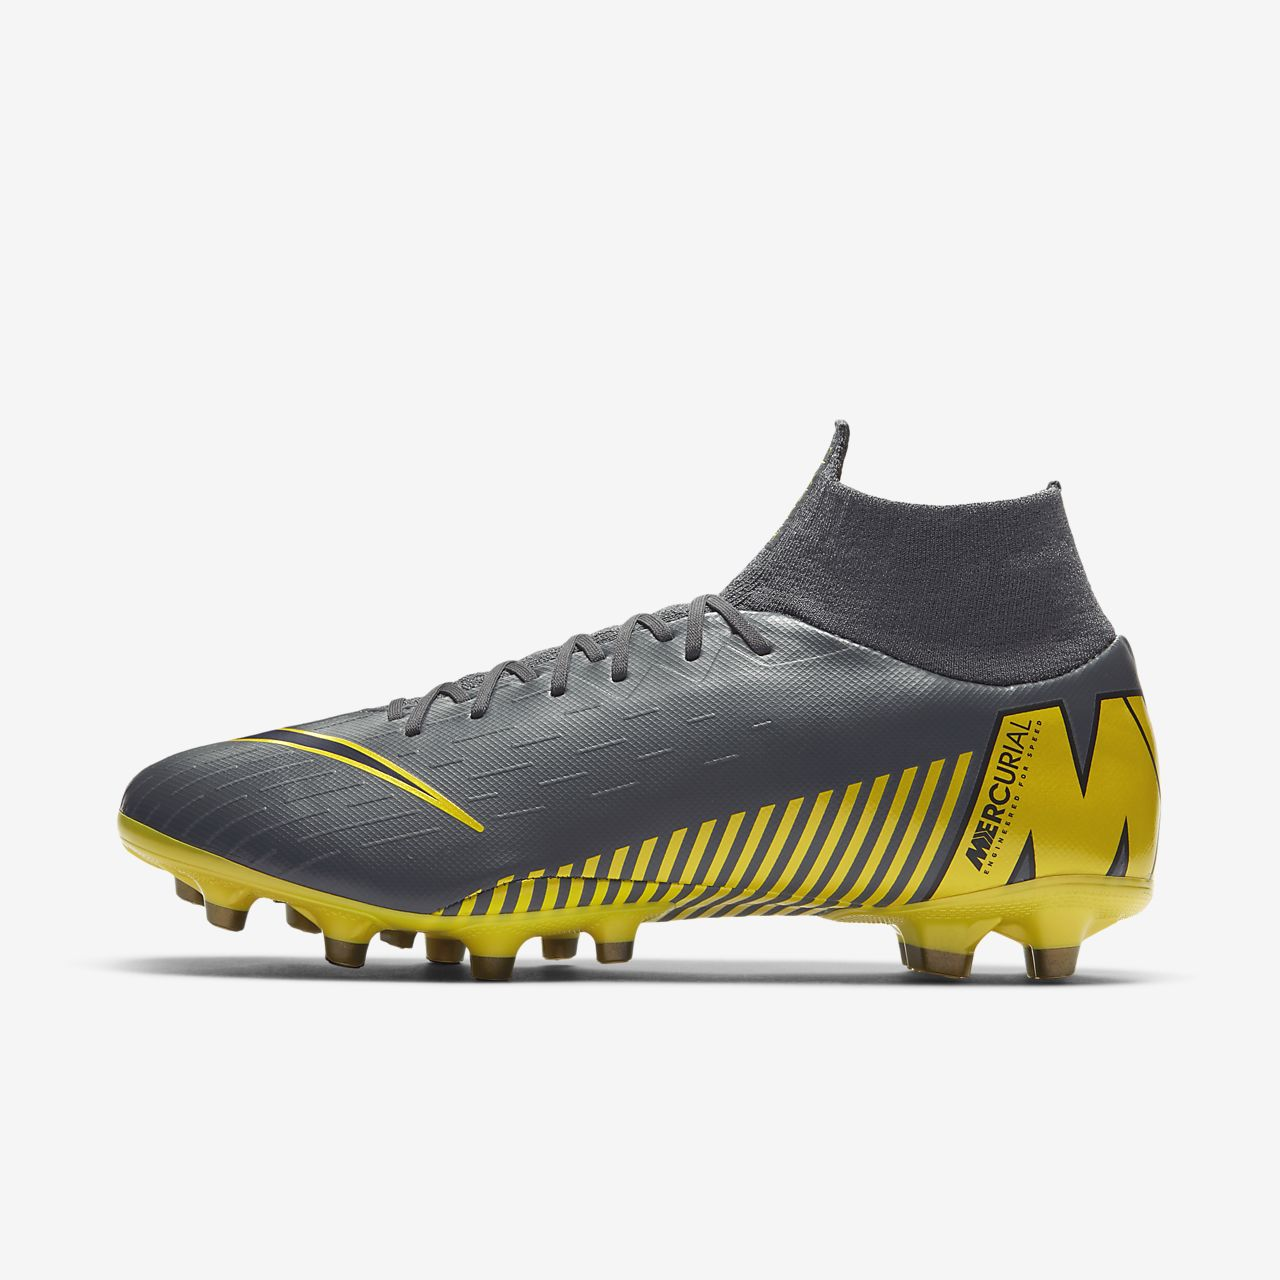 b0cffa68b2a Nike Mercurial Superfly VI Pro AG-PRO Artificial-Grass Football Boot ...